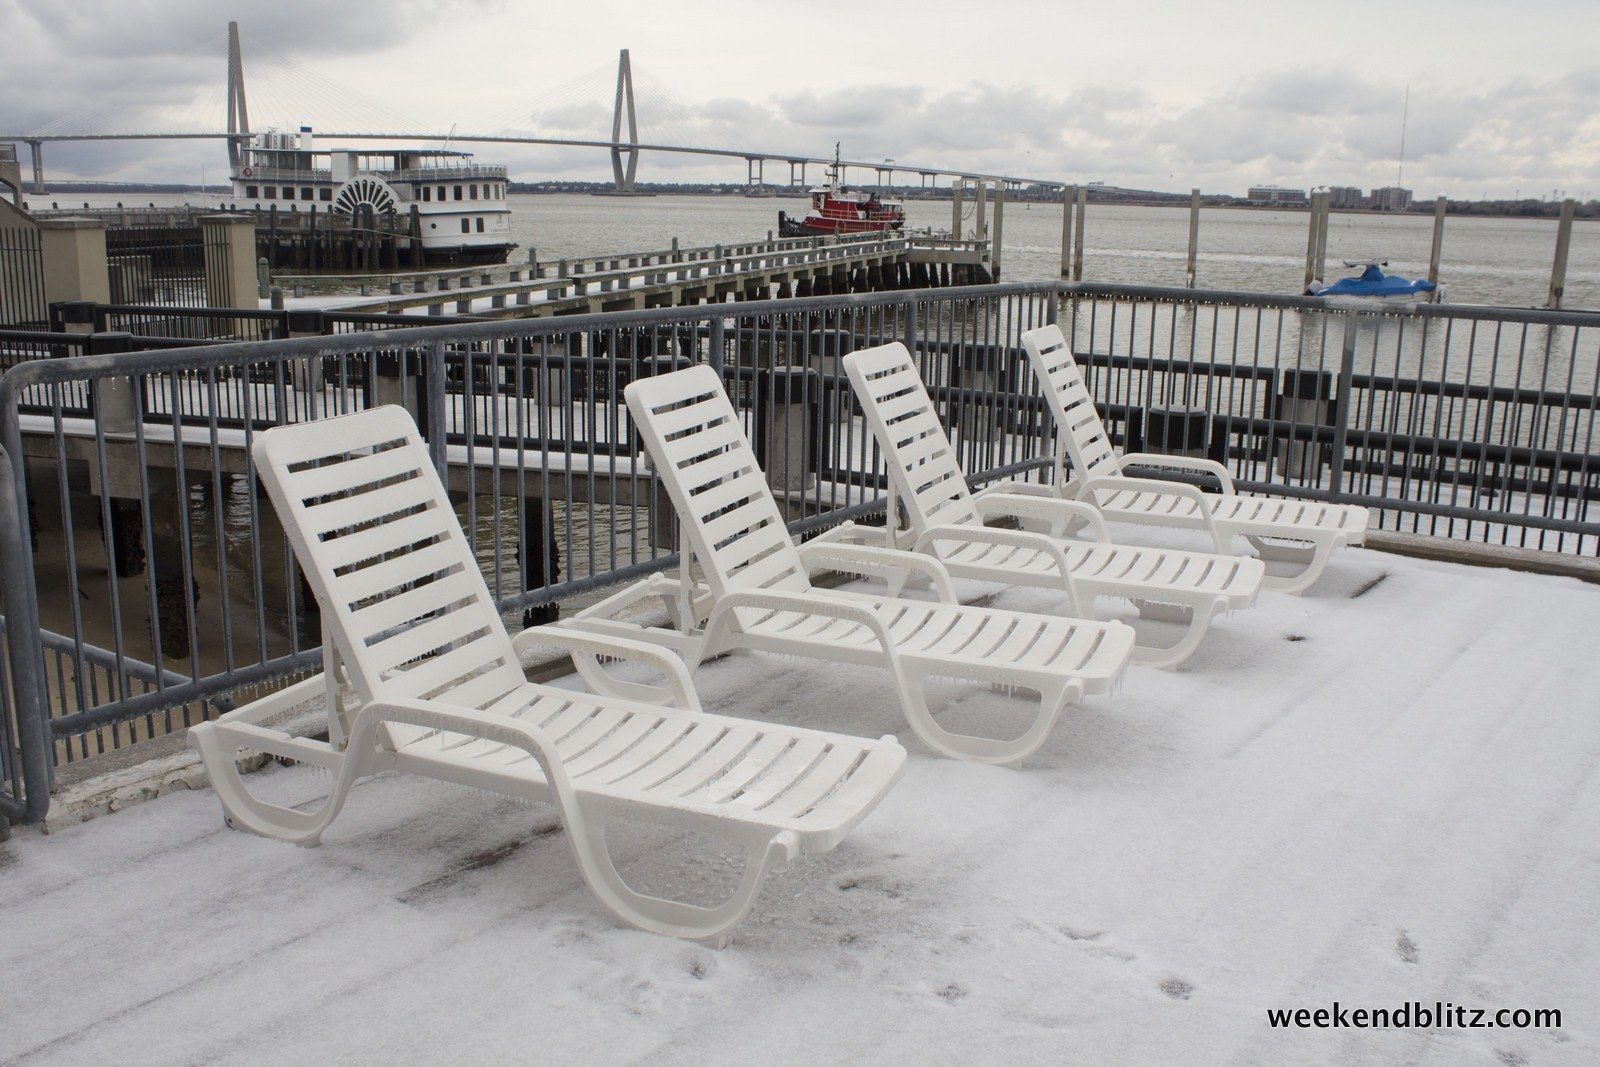 No bronzin' going on today -- from Dockside Condos over looking Charleston Harbor and Ravenel Bridge